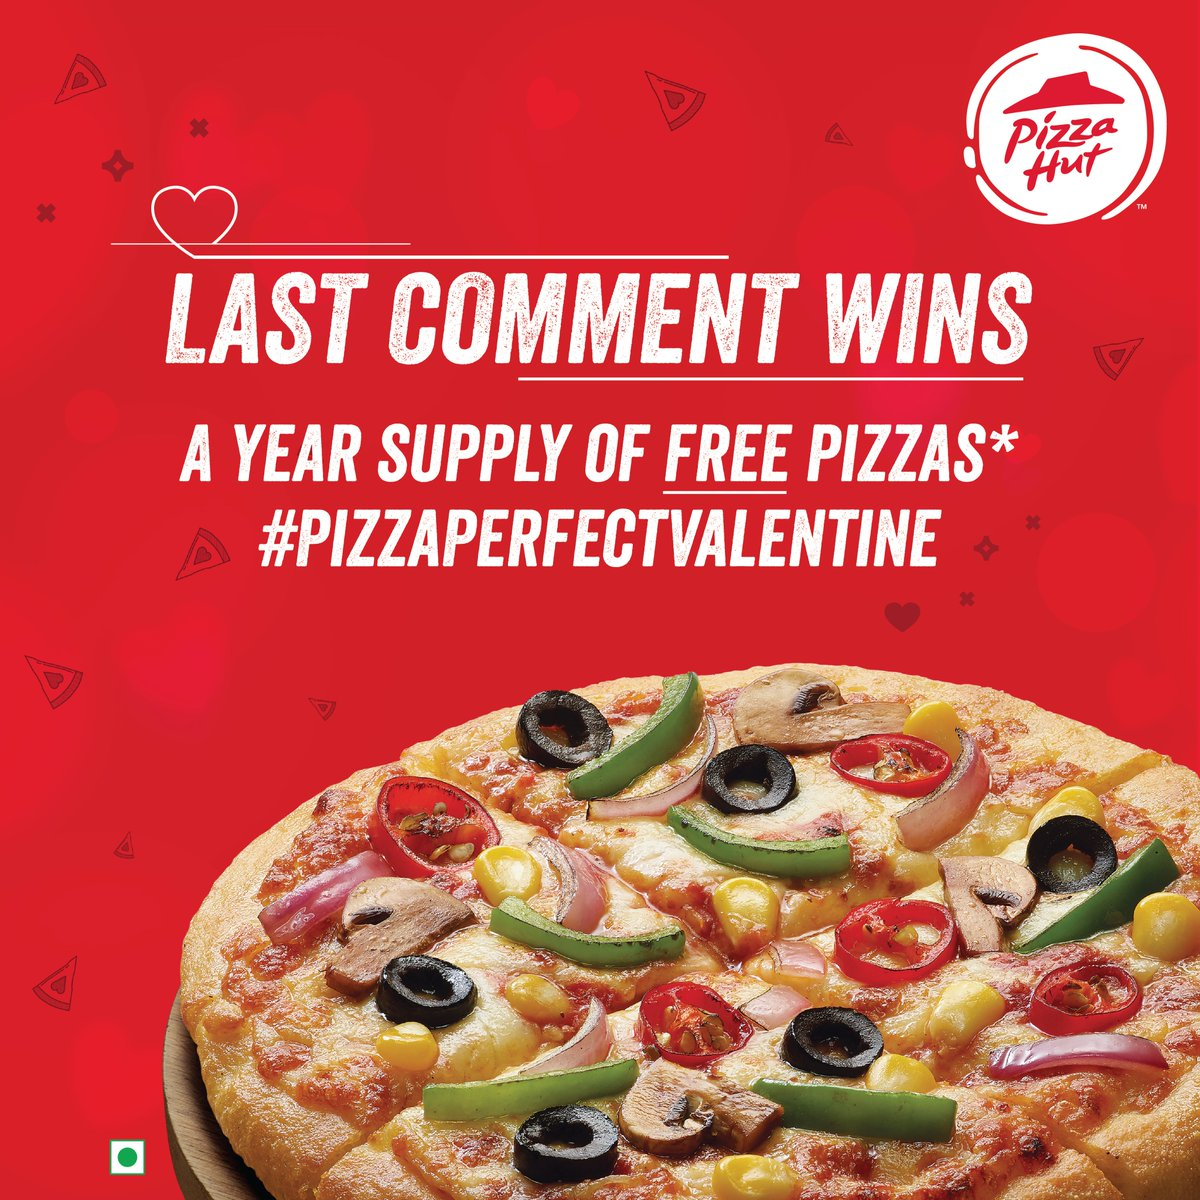 Stop scrolling & start commenting to win a year's supply of free pizzas, this #ValentinesDay. FREE pizzas for you & your +1 is just a comment away! The secret timer goes off in the next 15 hours. #PizzaPerfectValentine #ContestAlert #GiveawayAlert   T&C - http://bit.ly/PizzaPerfectValentine…pic.twitter.com/zmaLx9T7XX